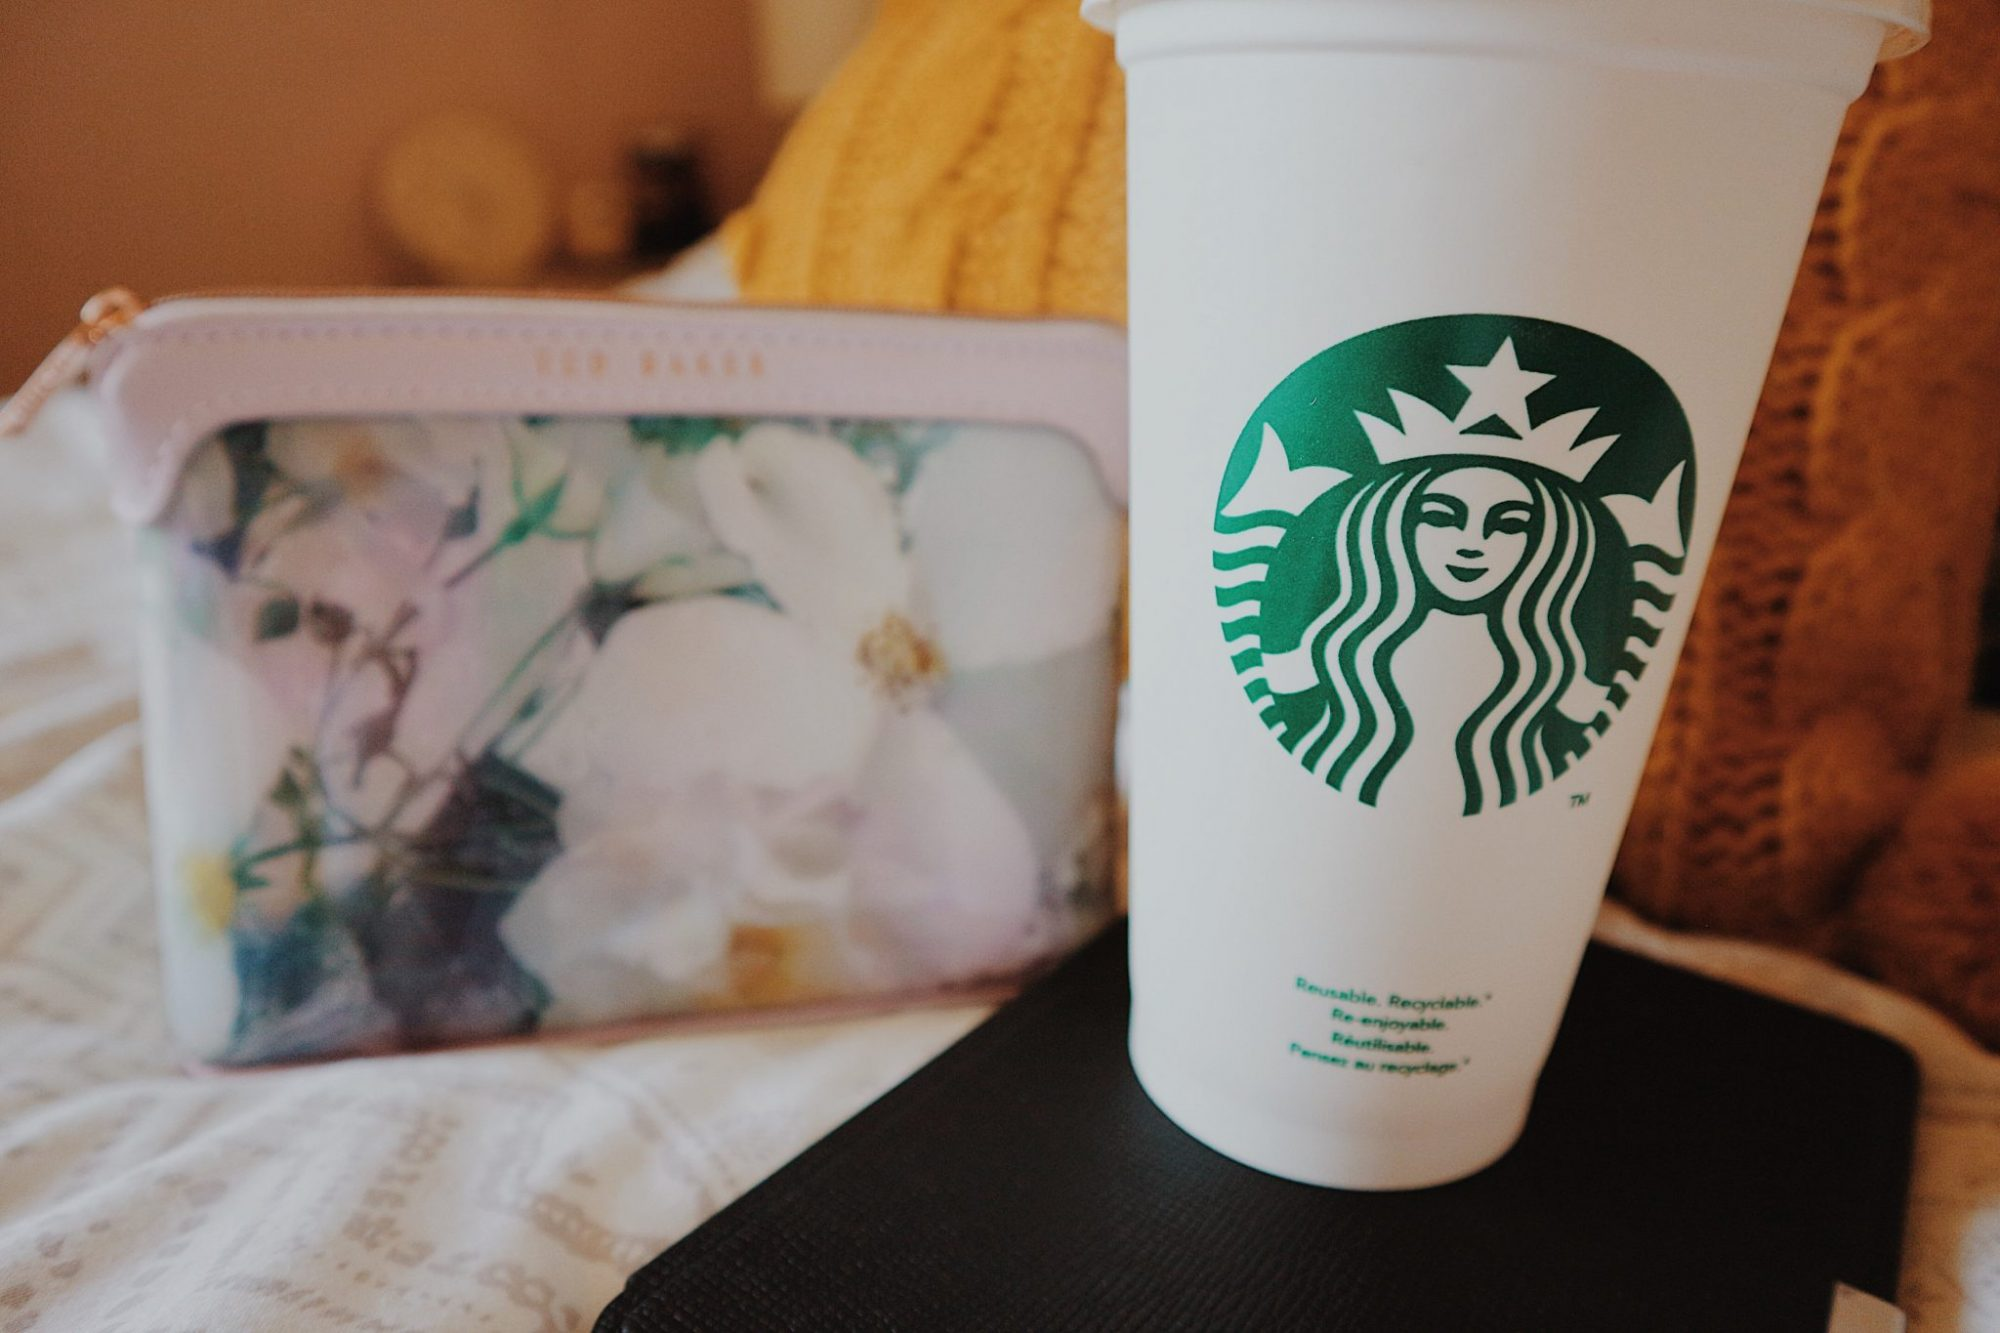 Ted Baker Cosmetics Bag | Kindle Paperwhite | Starbucks Reusable Travel Mug